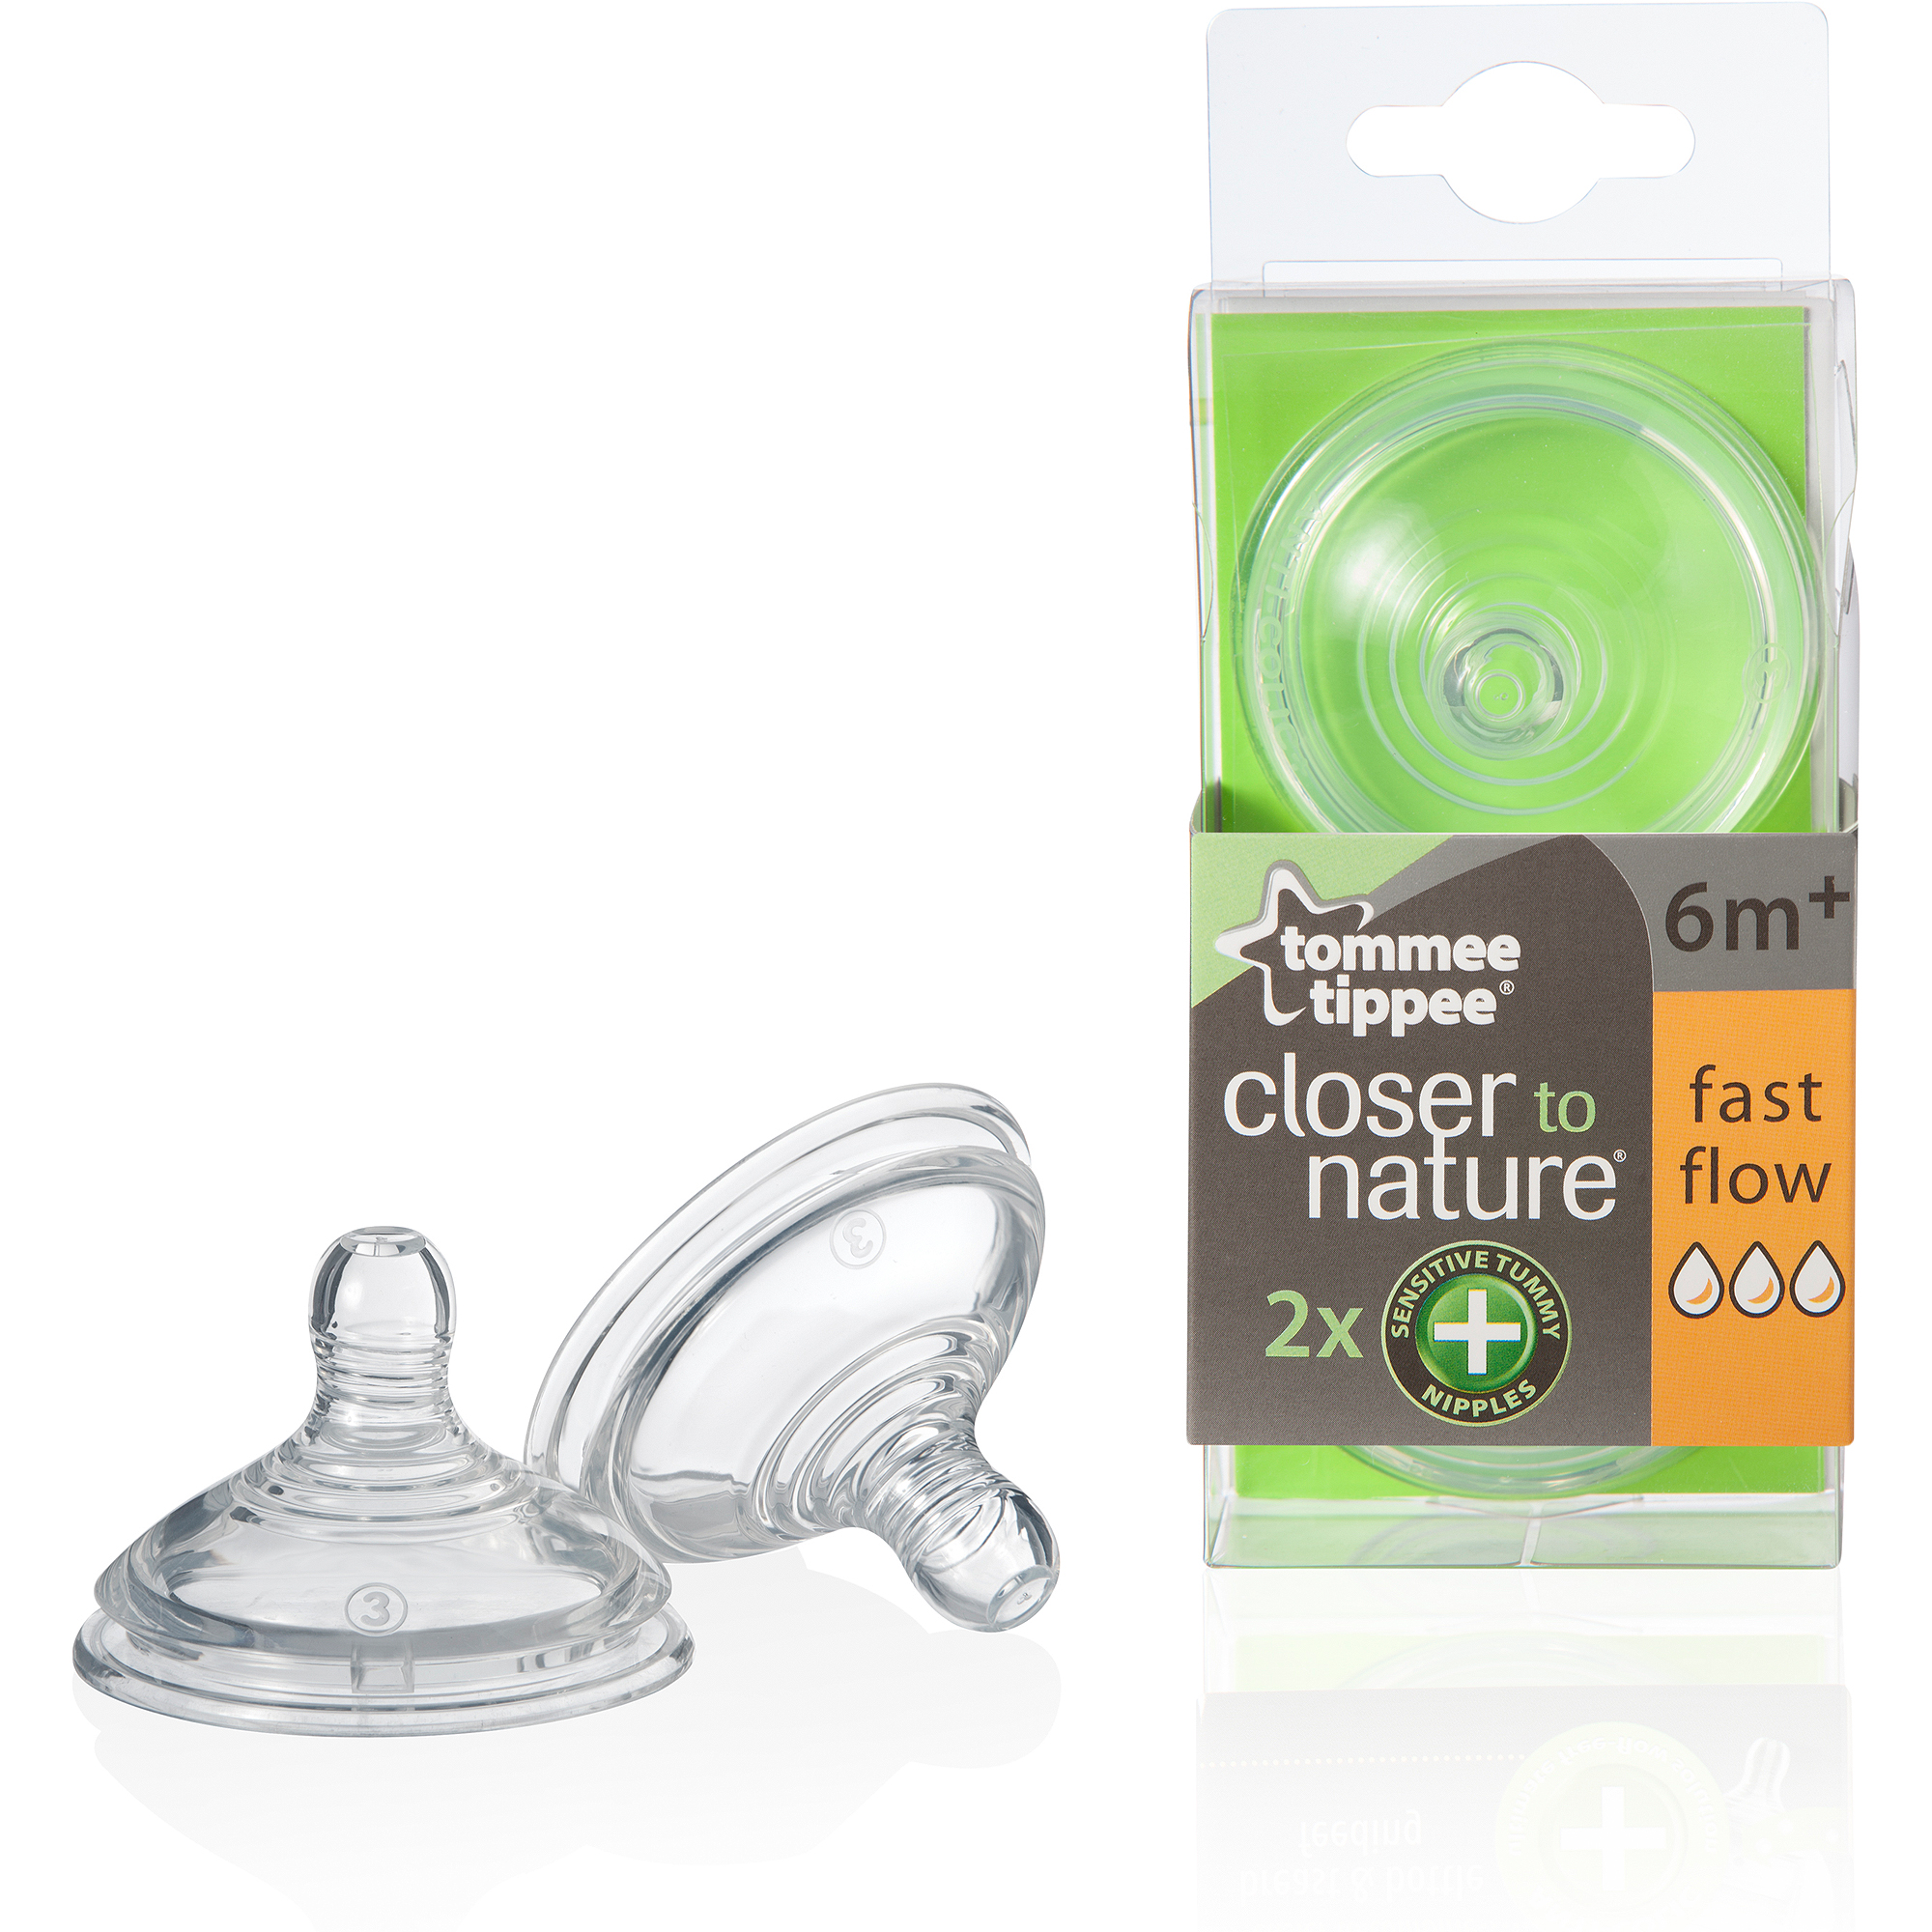 Tommee Tippee Closer to Nature Sensitive Tummy Nipple, Fast Flow, 2-Pack, BPA-Free